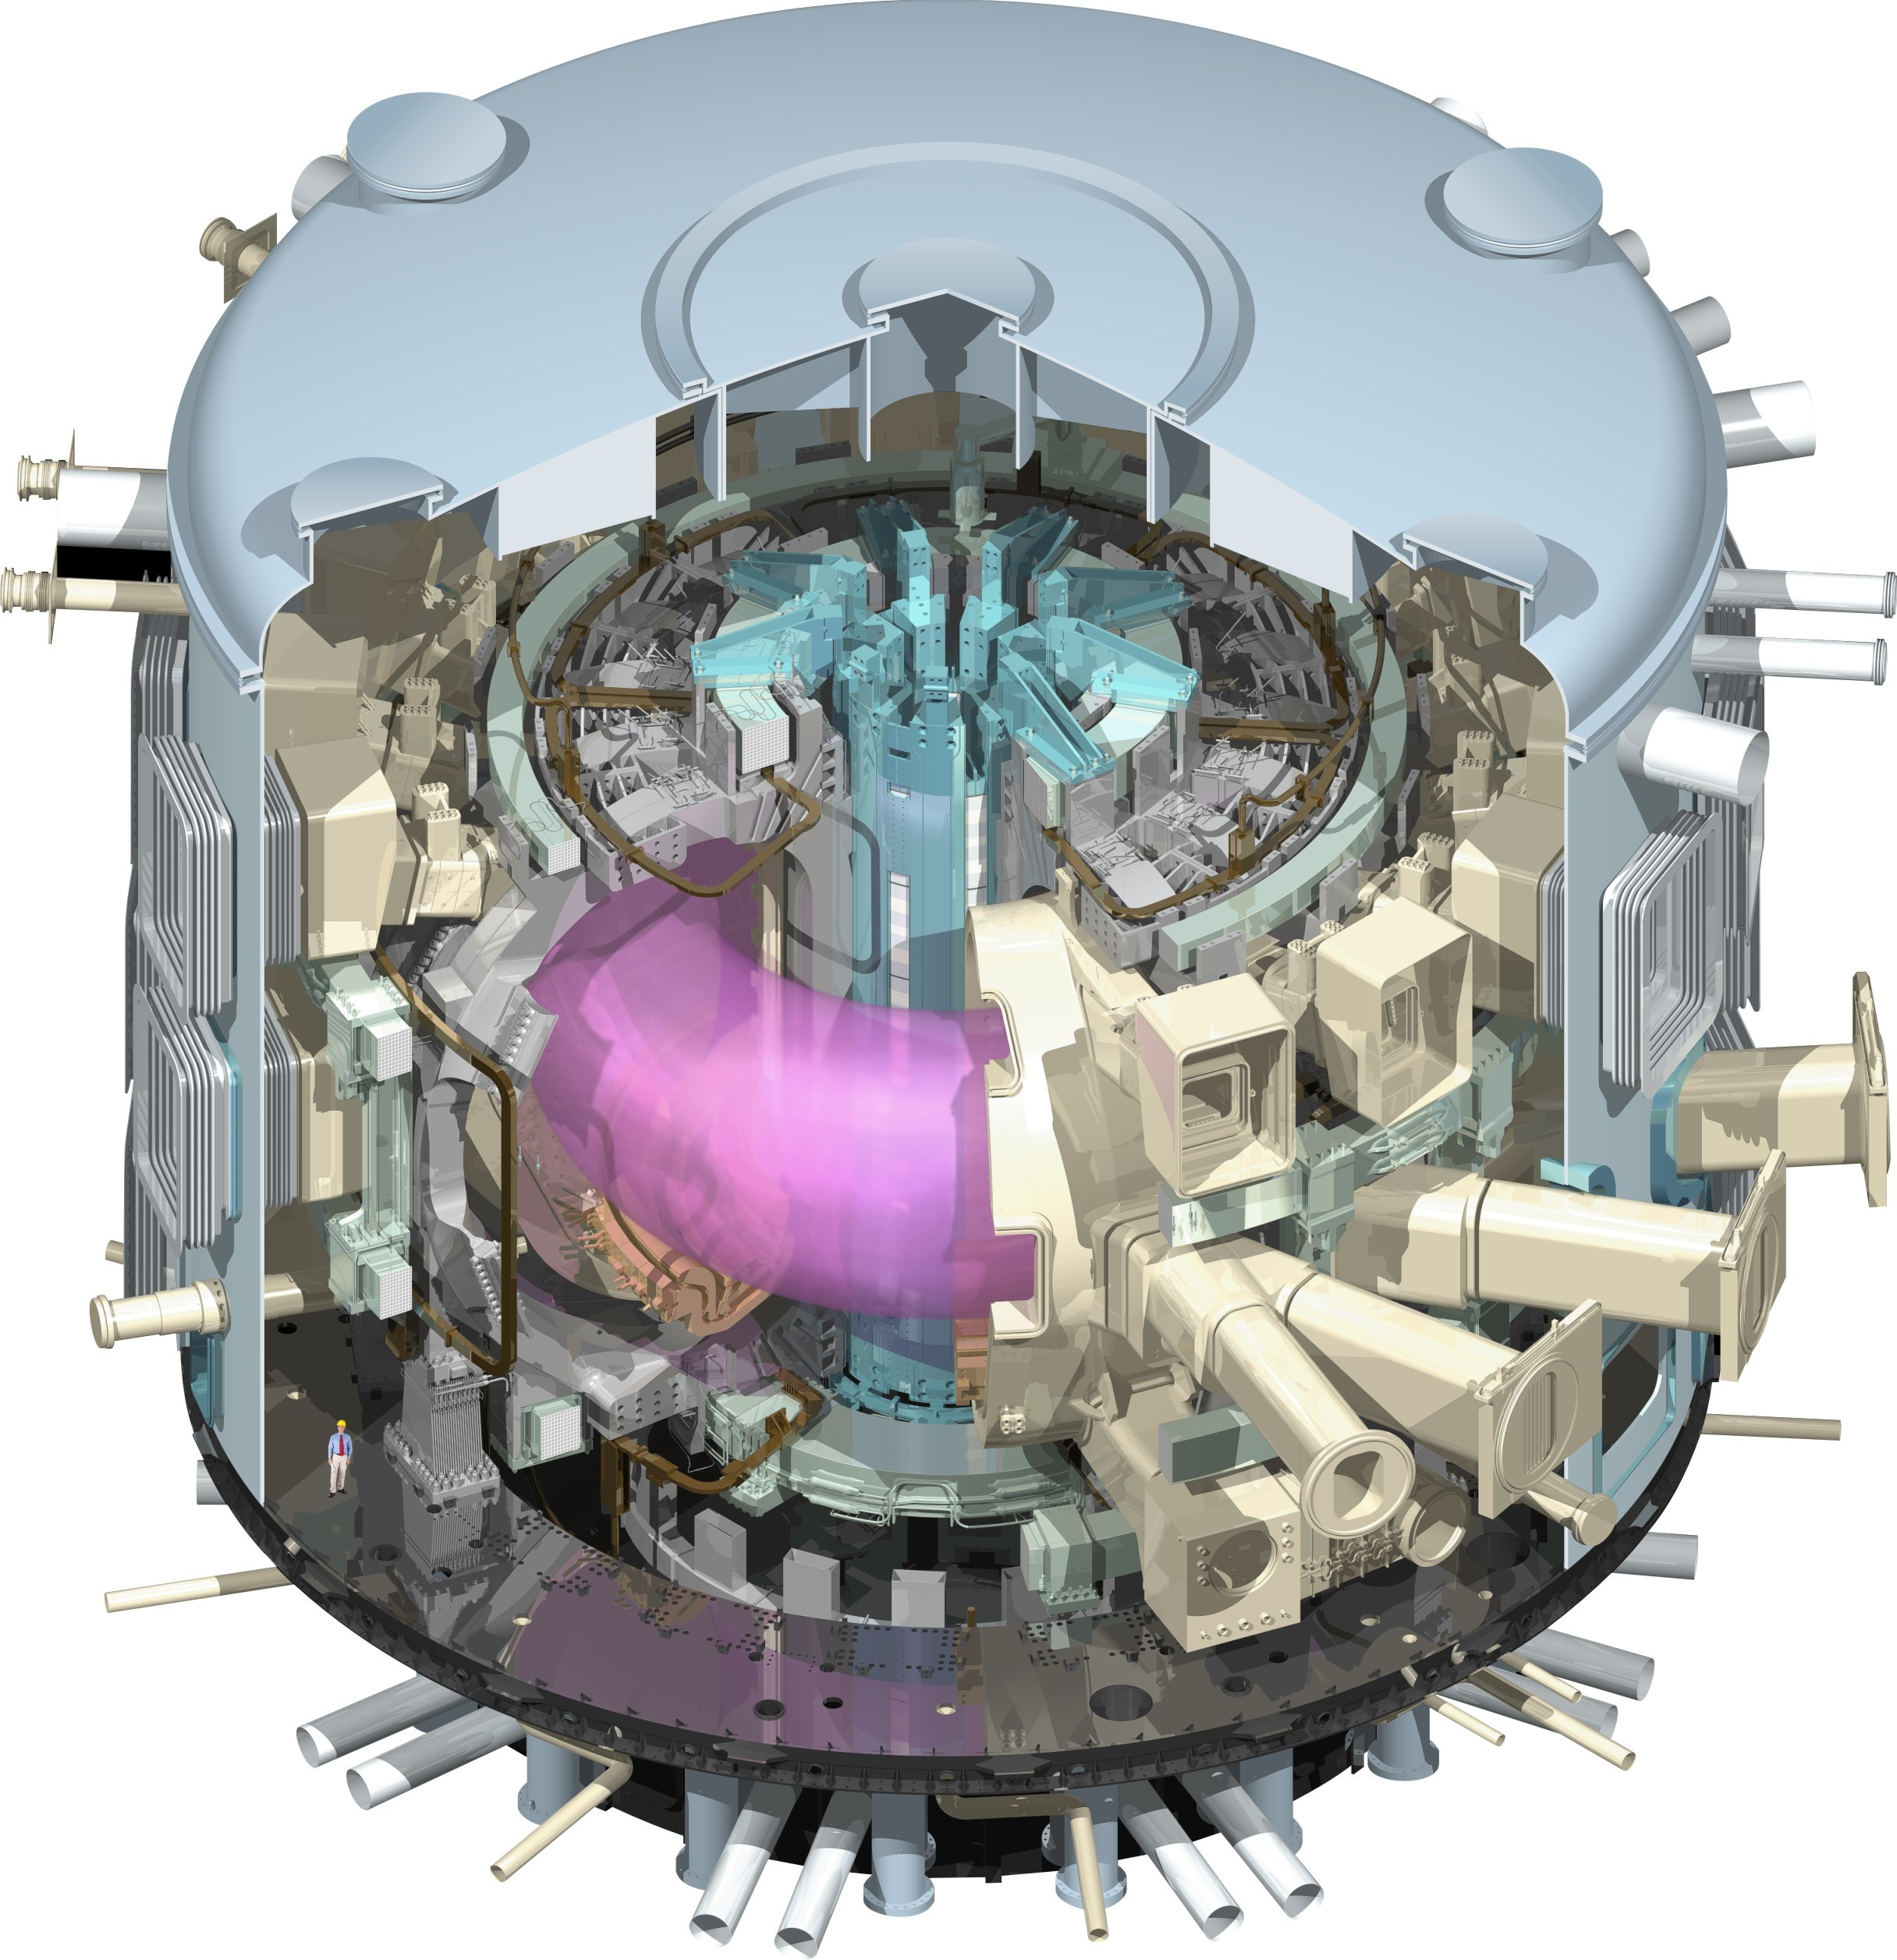 Advancement in nuclear fusion tech continues transition to clean energy future